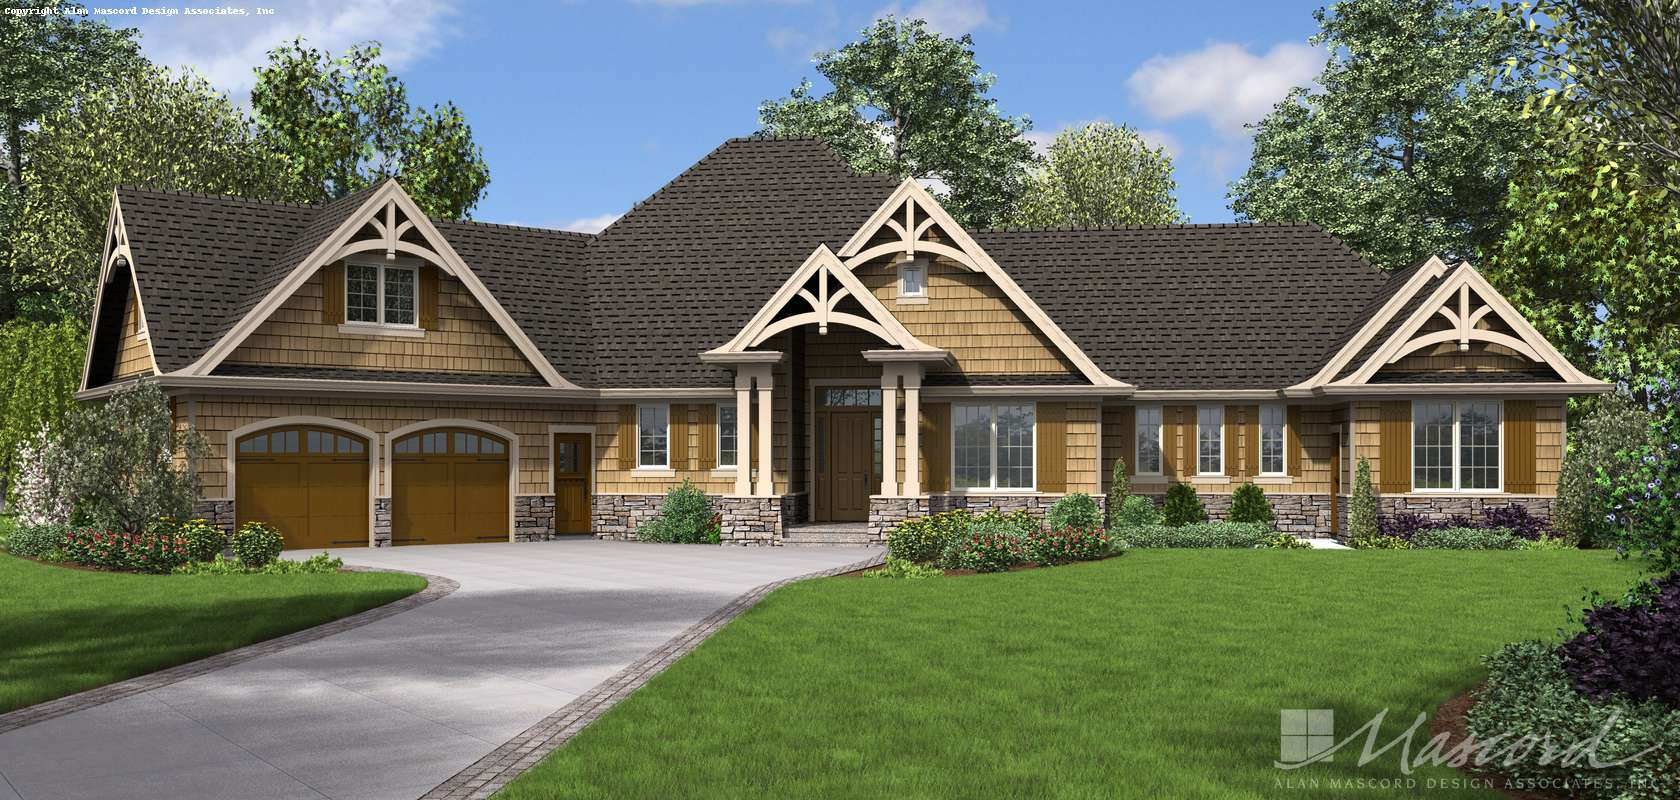 Mascord House Plan 1248A: The Bishop